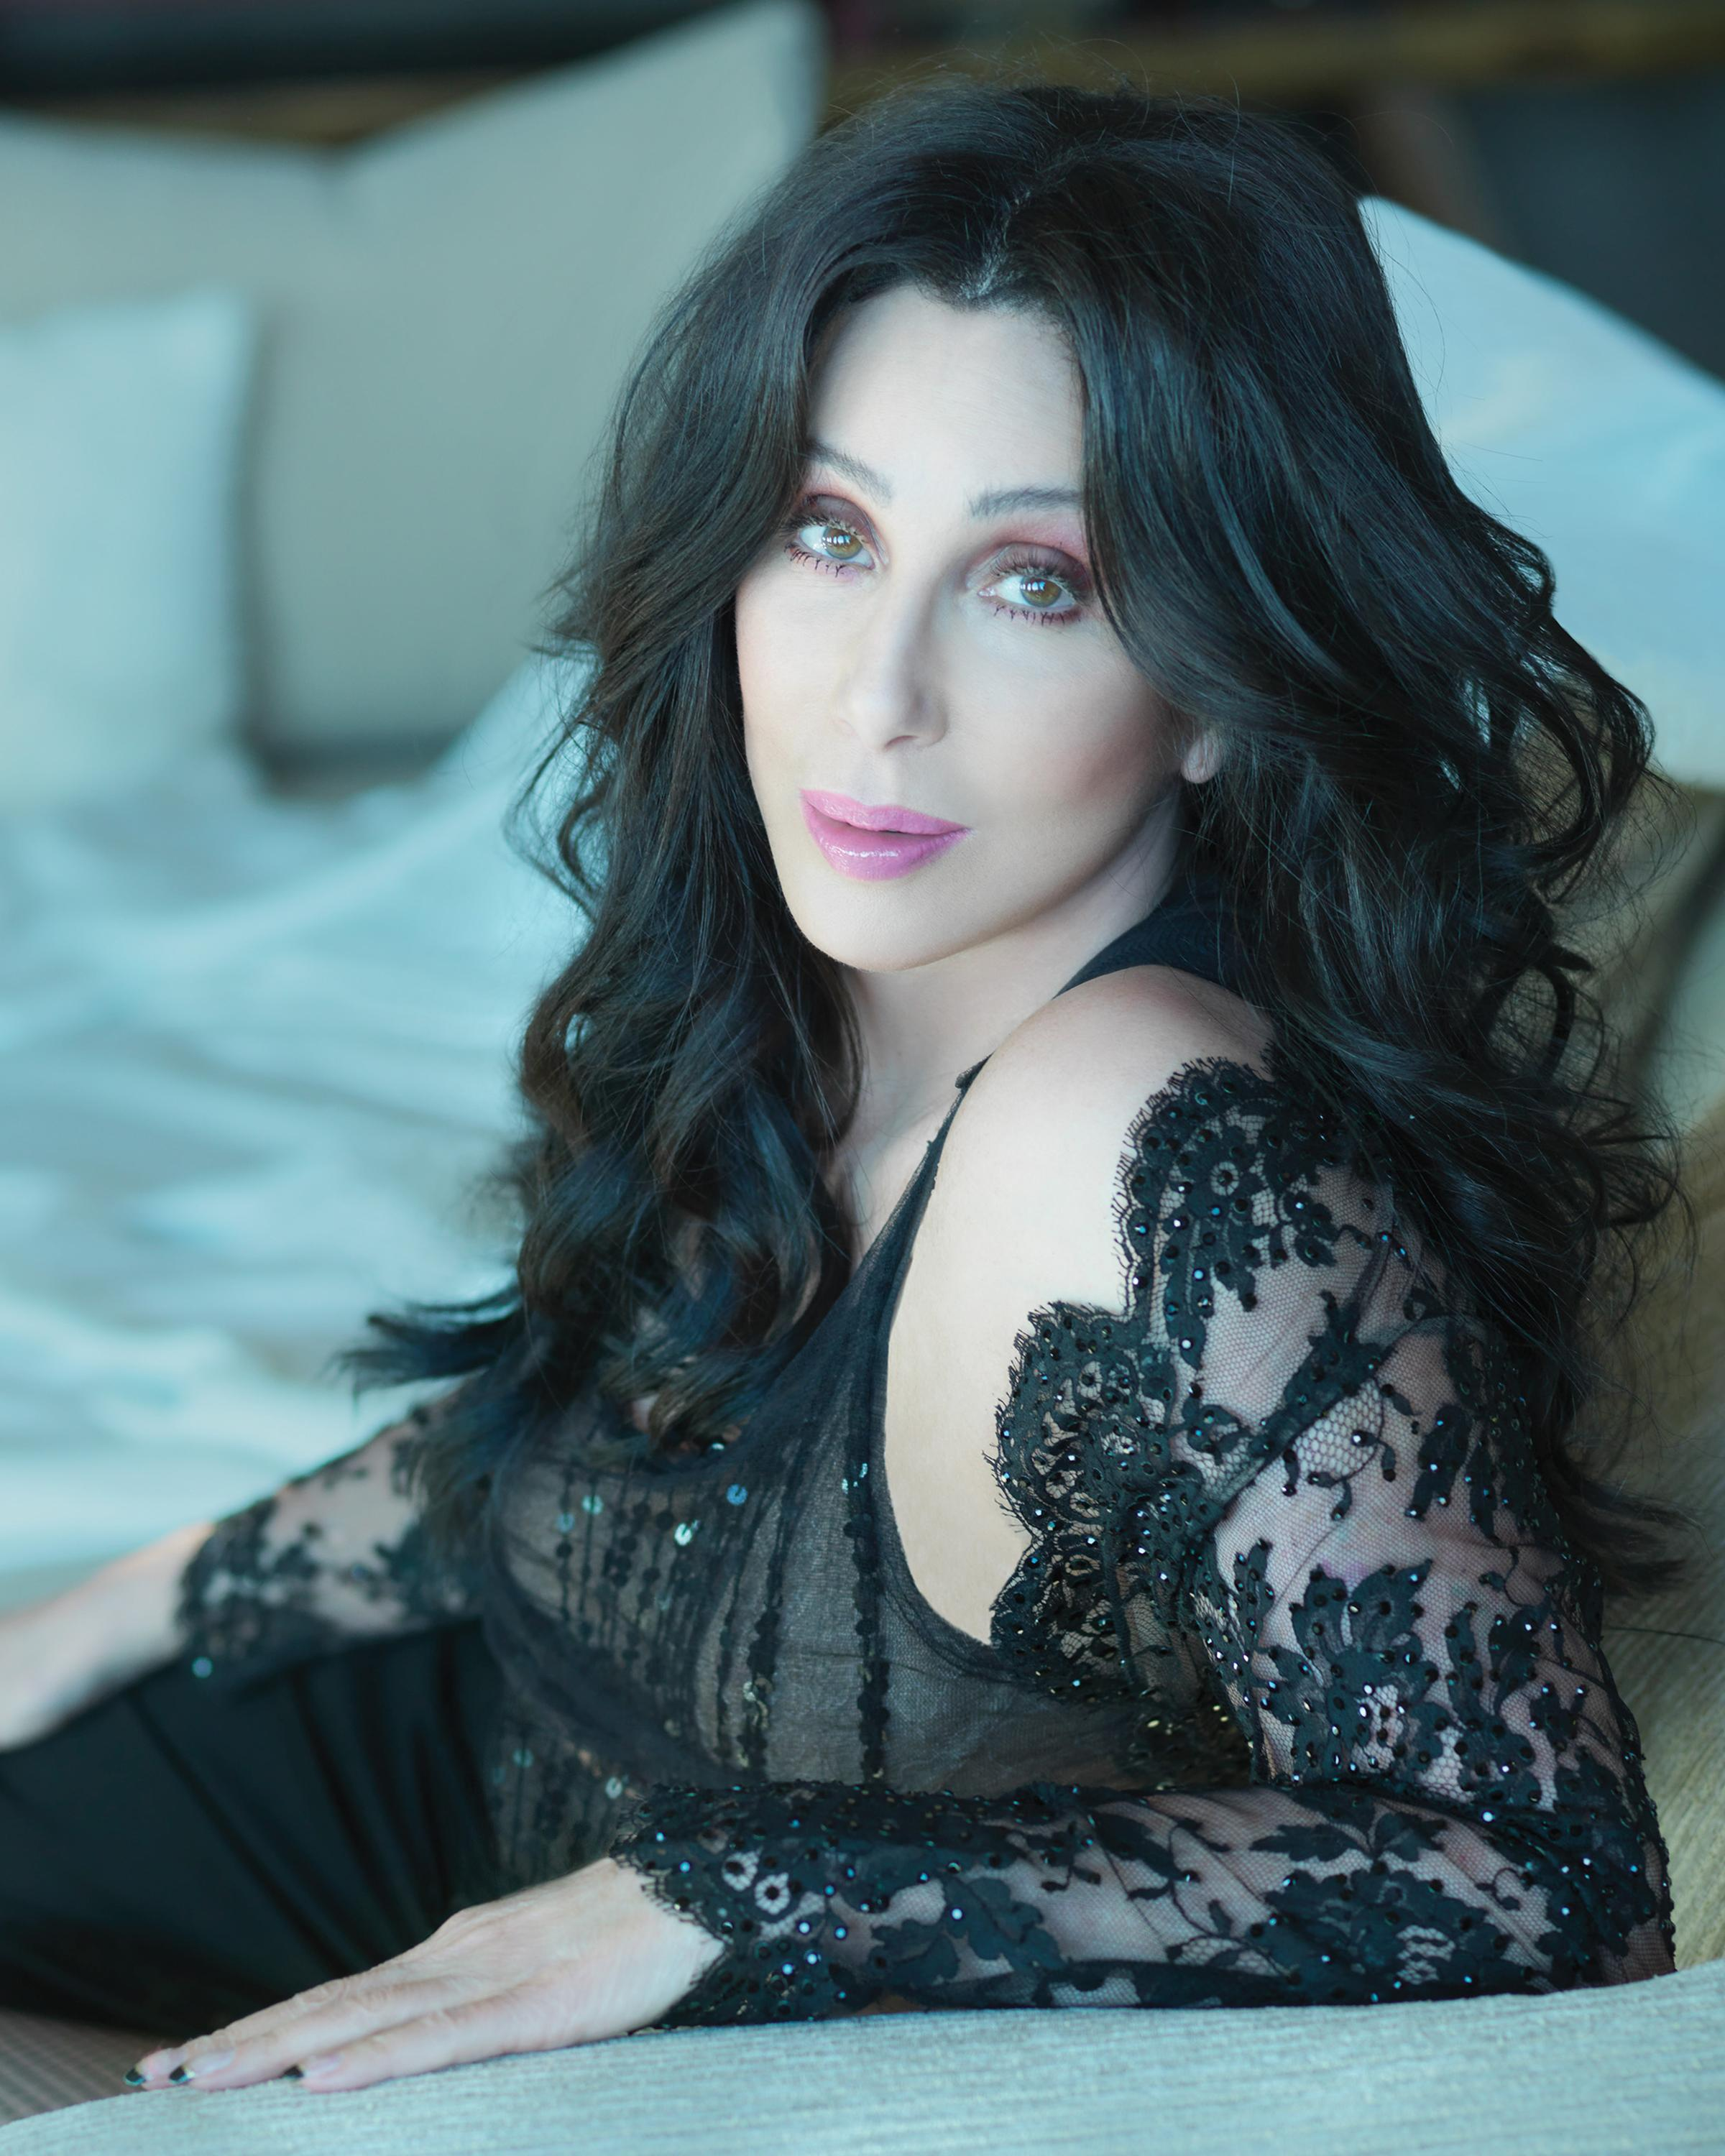 "<p>""When I was very young I saw Dumbo and Cinderella and knew then what I wanted to be and the path my life would take and here I am! I am very grateful to the Kennedy Center for this honor."" (Image: Courtesy Cher)</p>"